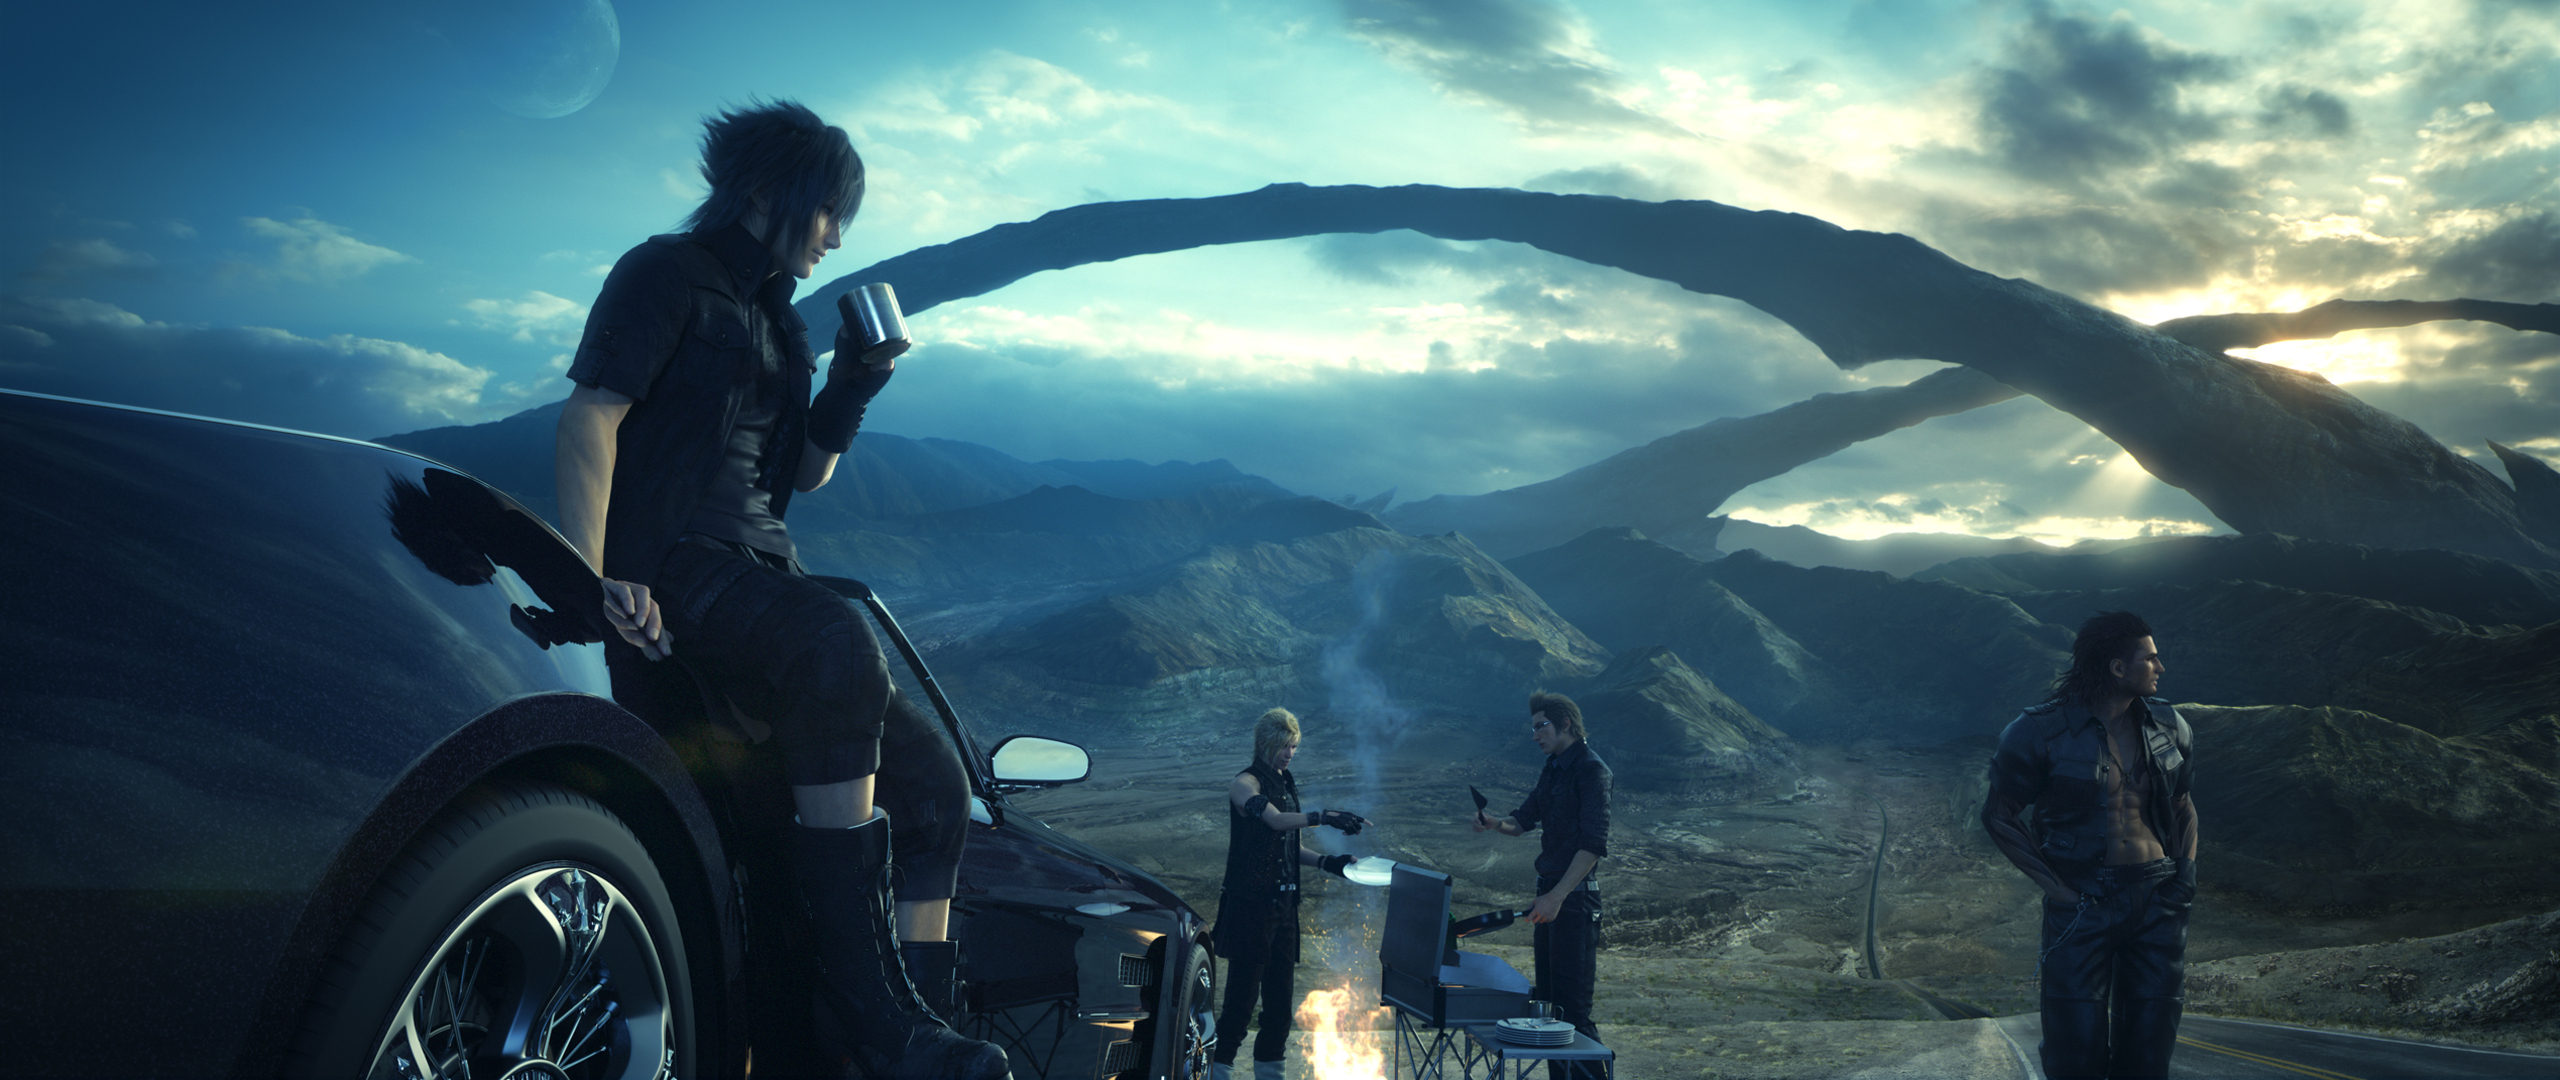 4k Final Fantasy Xv Hd Games 4k Wallpapers Images: 2560x1080 Final Fantasy 7 2560x1080 Resolution HD 4k